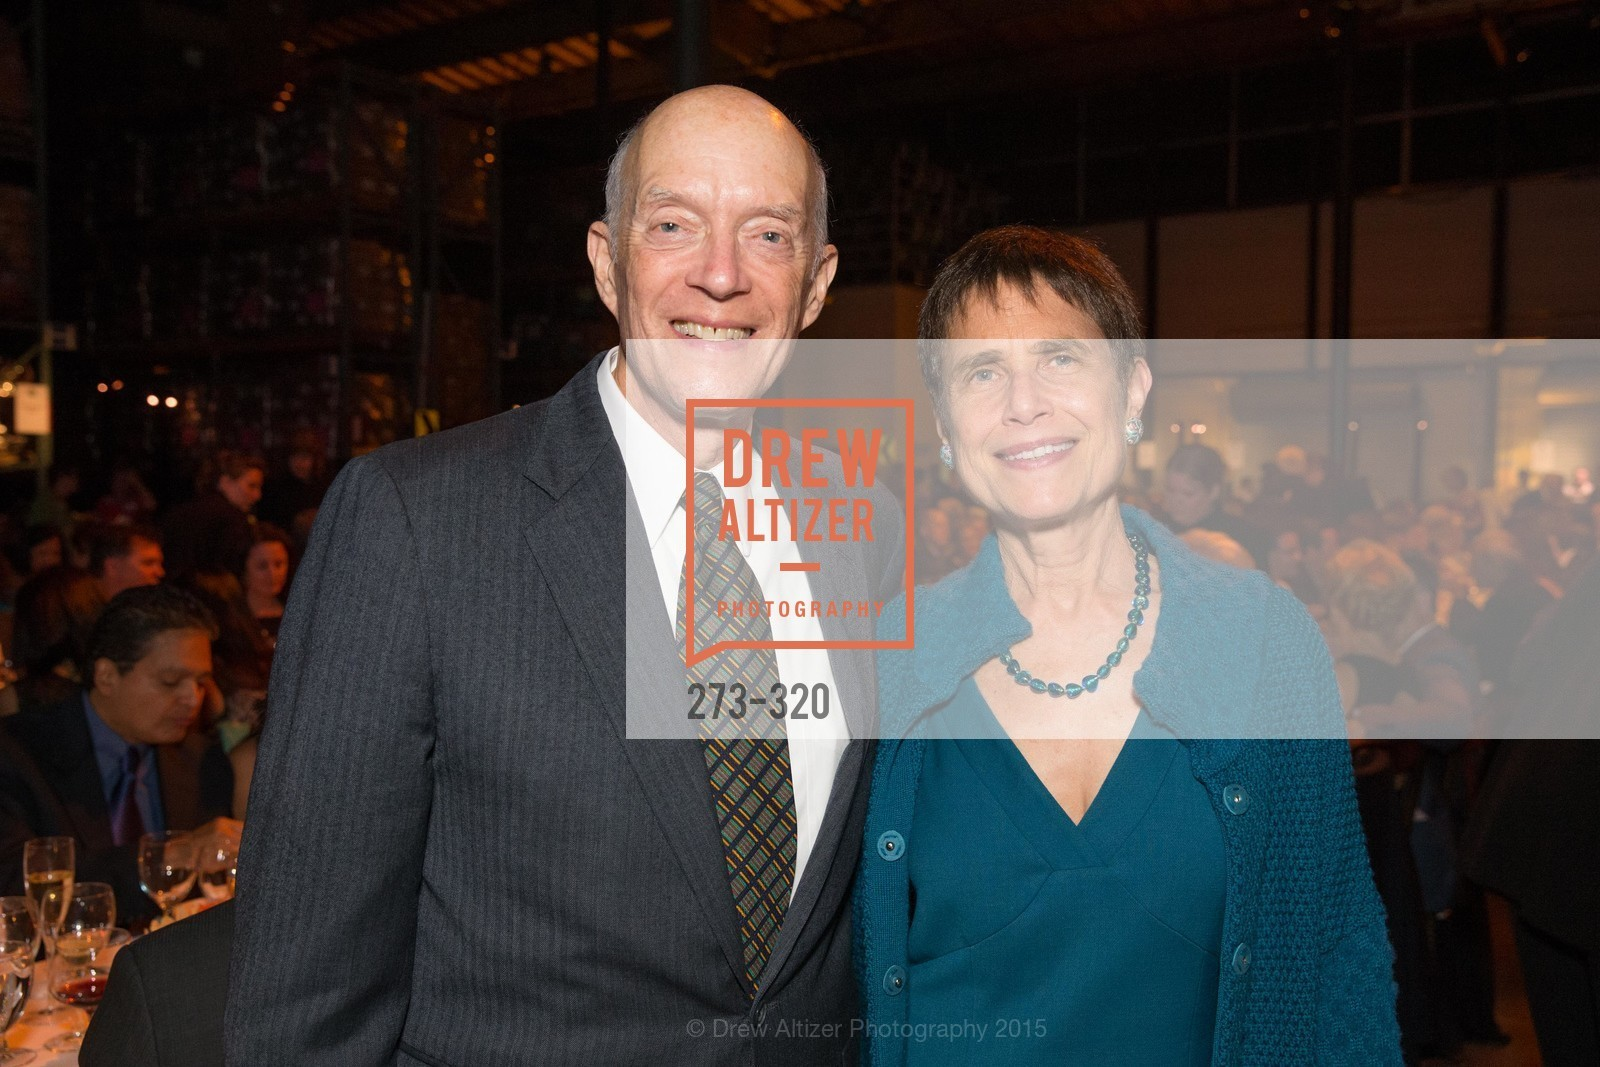 Stephen Pearce, Christine Russell, SF - Marin Food Bank Presents ONE BIG TABLE, SF- Marin Food Bank. 900 Pennsylvania Ave, September 26th, 2015,Drew Altizer, Drew Altizer Photography, full-service agency, private events, San Francisco photographer, photographer california